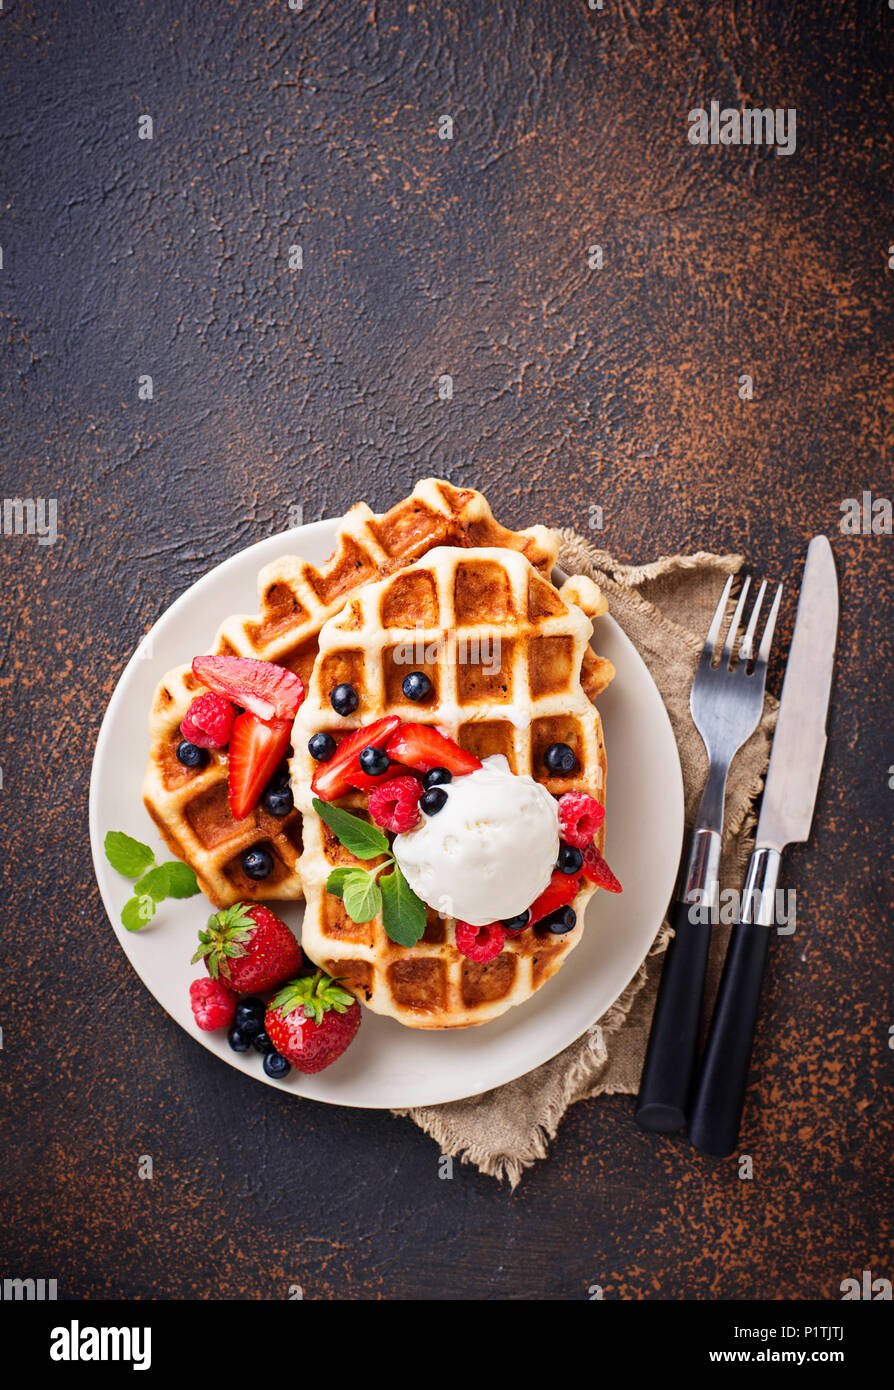 Belgium waffles with berries and ice cream - Stock Image